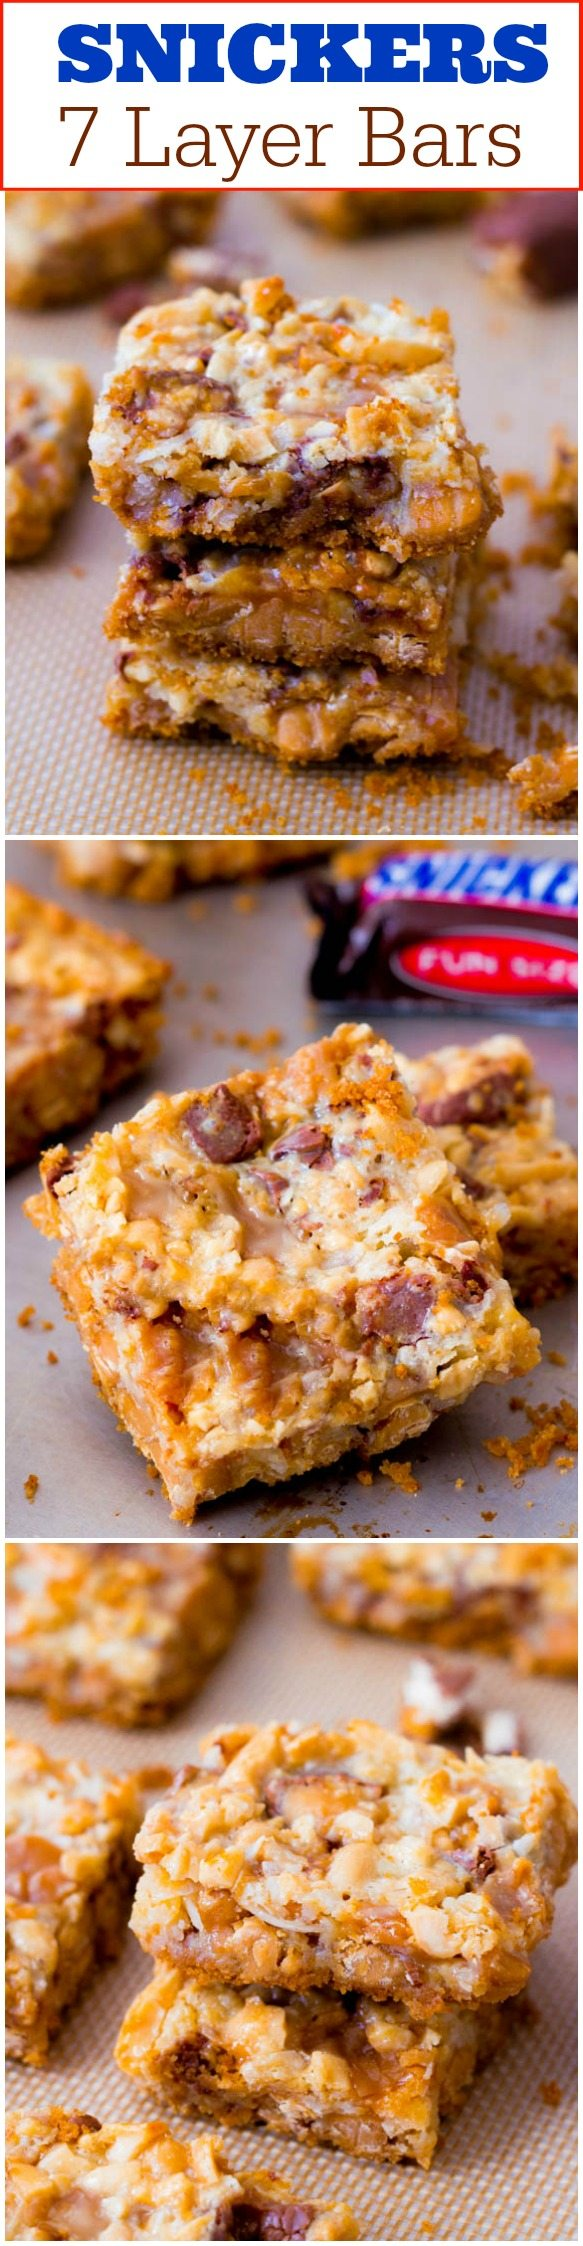 Snickers Bars - caramel-infused, 7 layered version of a Snickers Bar ...